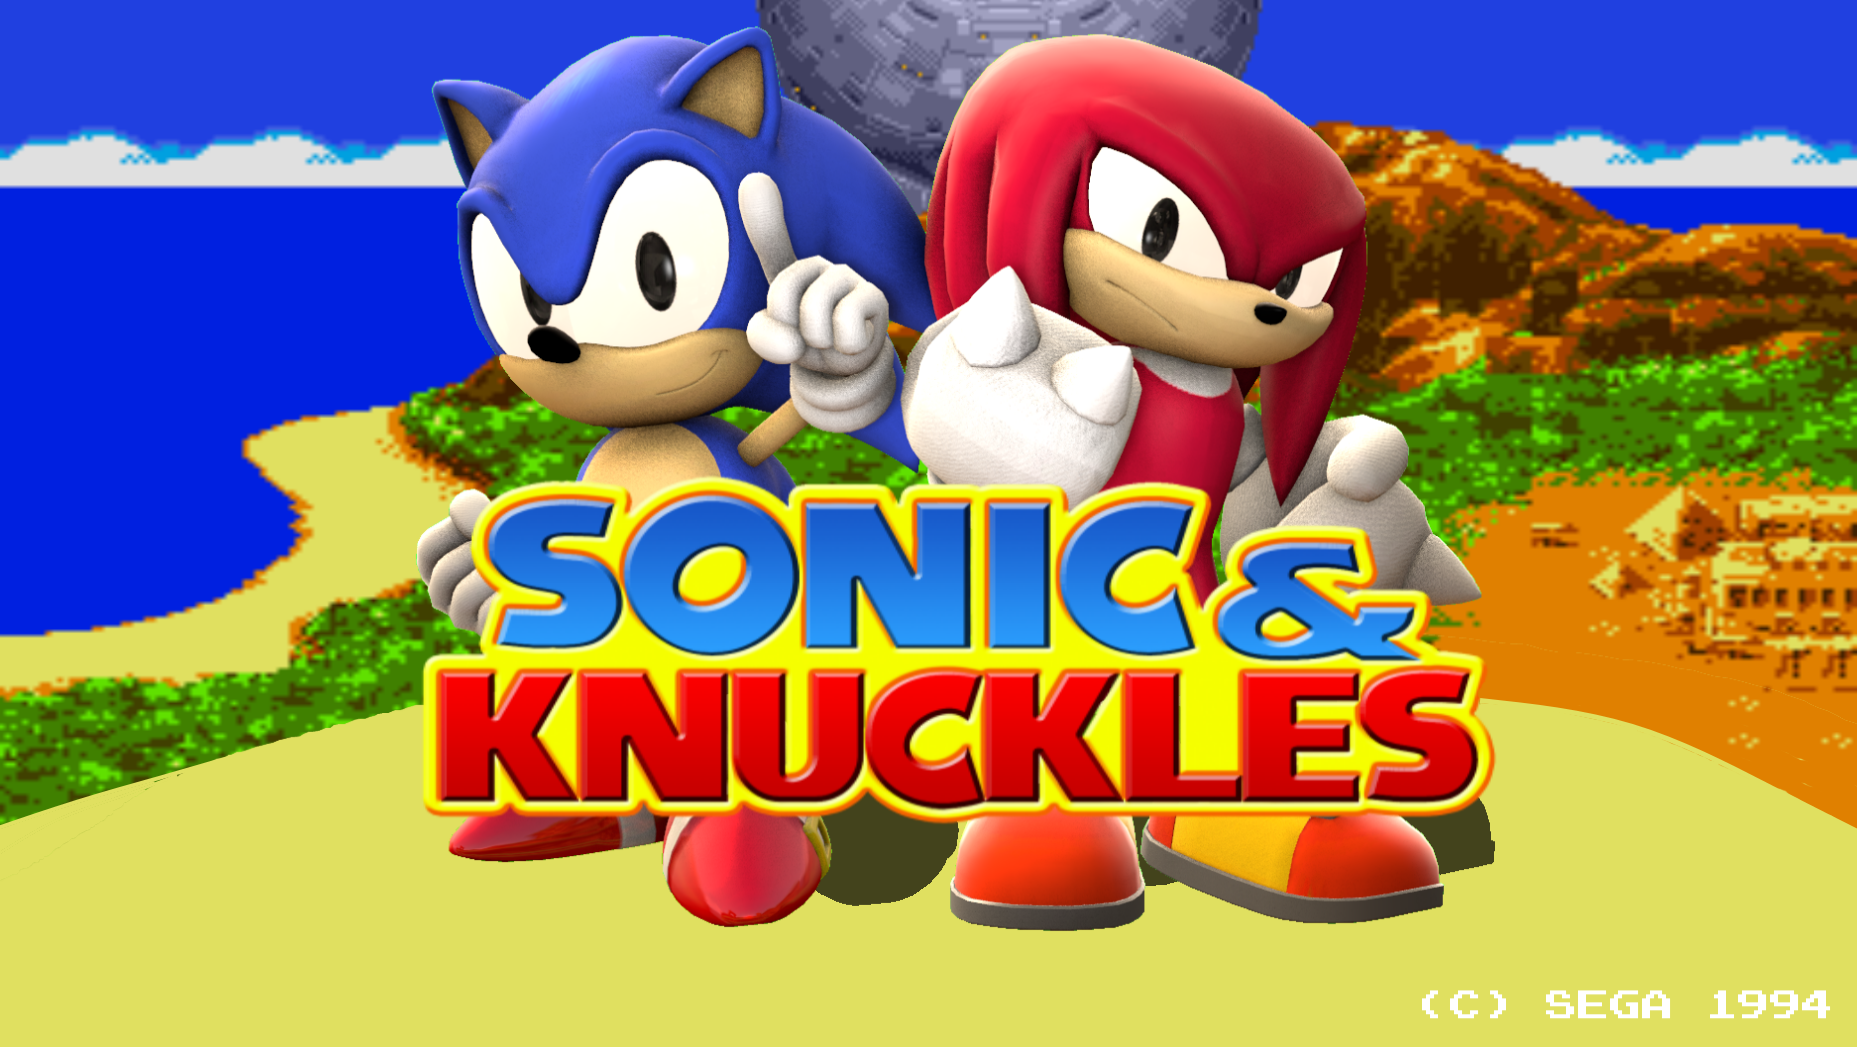 Sfm Sonic And Knuckles Title Screen Remake By Blueeyedthunder On Deviantart